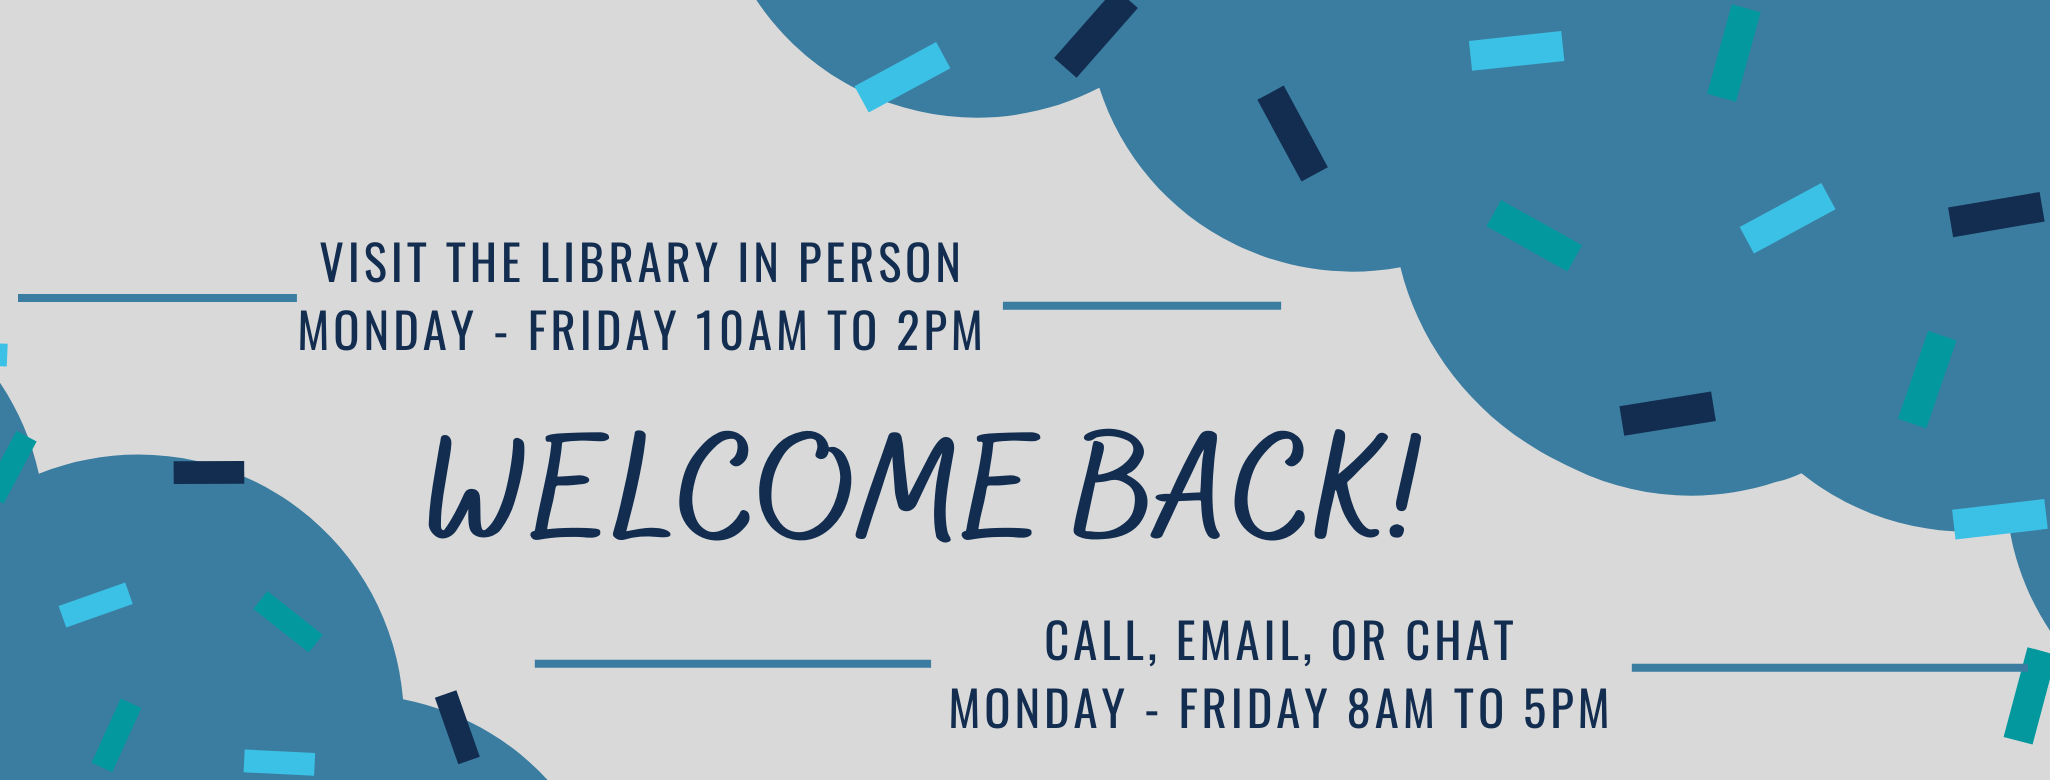 Visit the Library in Person Monday through Friday 10 am to 2 pm.  Call, email, or chat Monday through Friday 8 am to 5 pm.